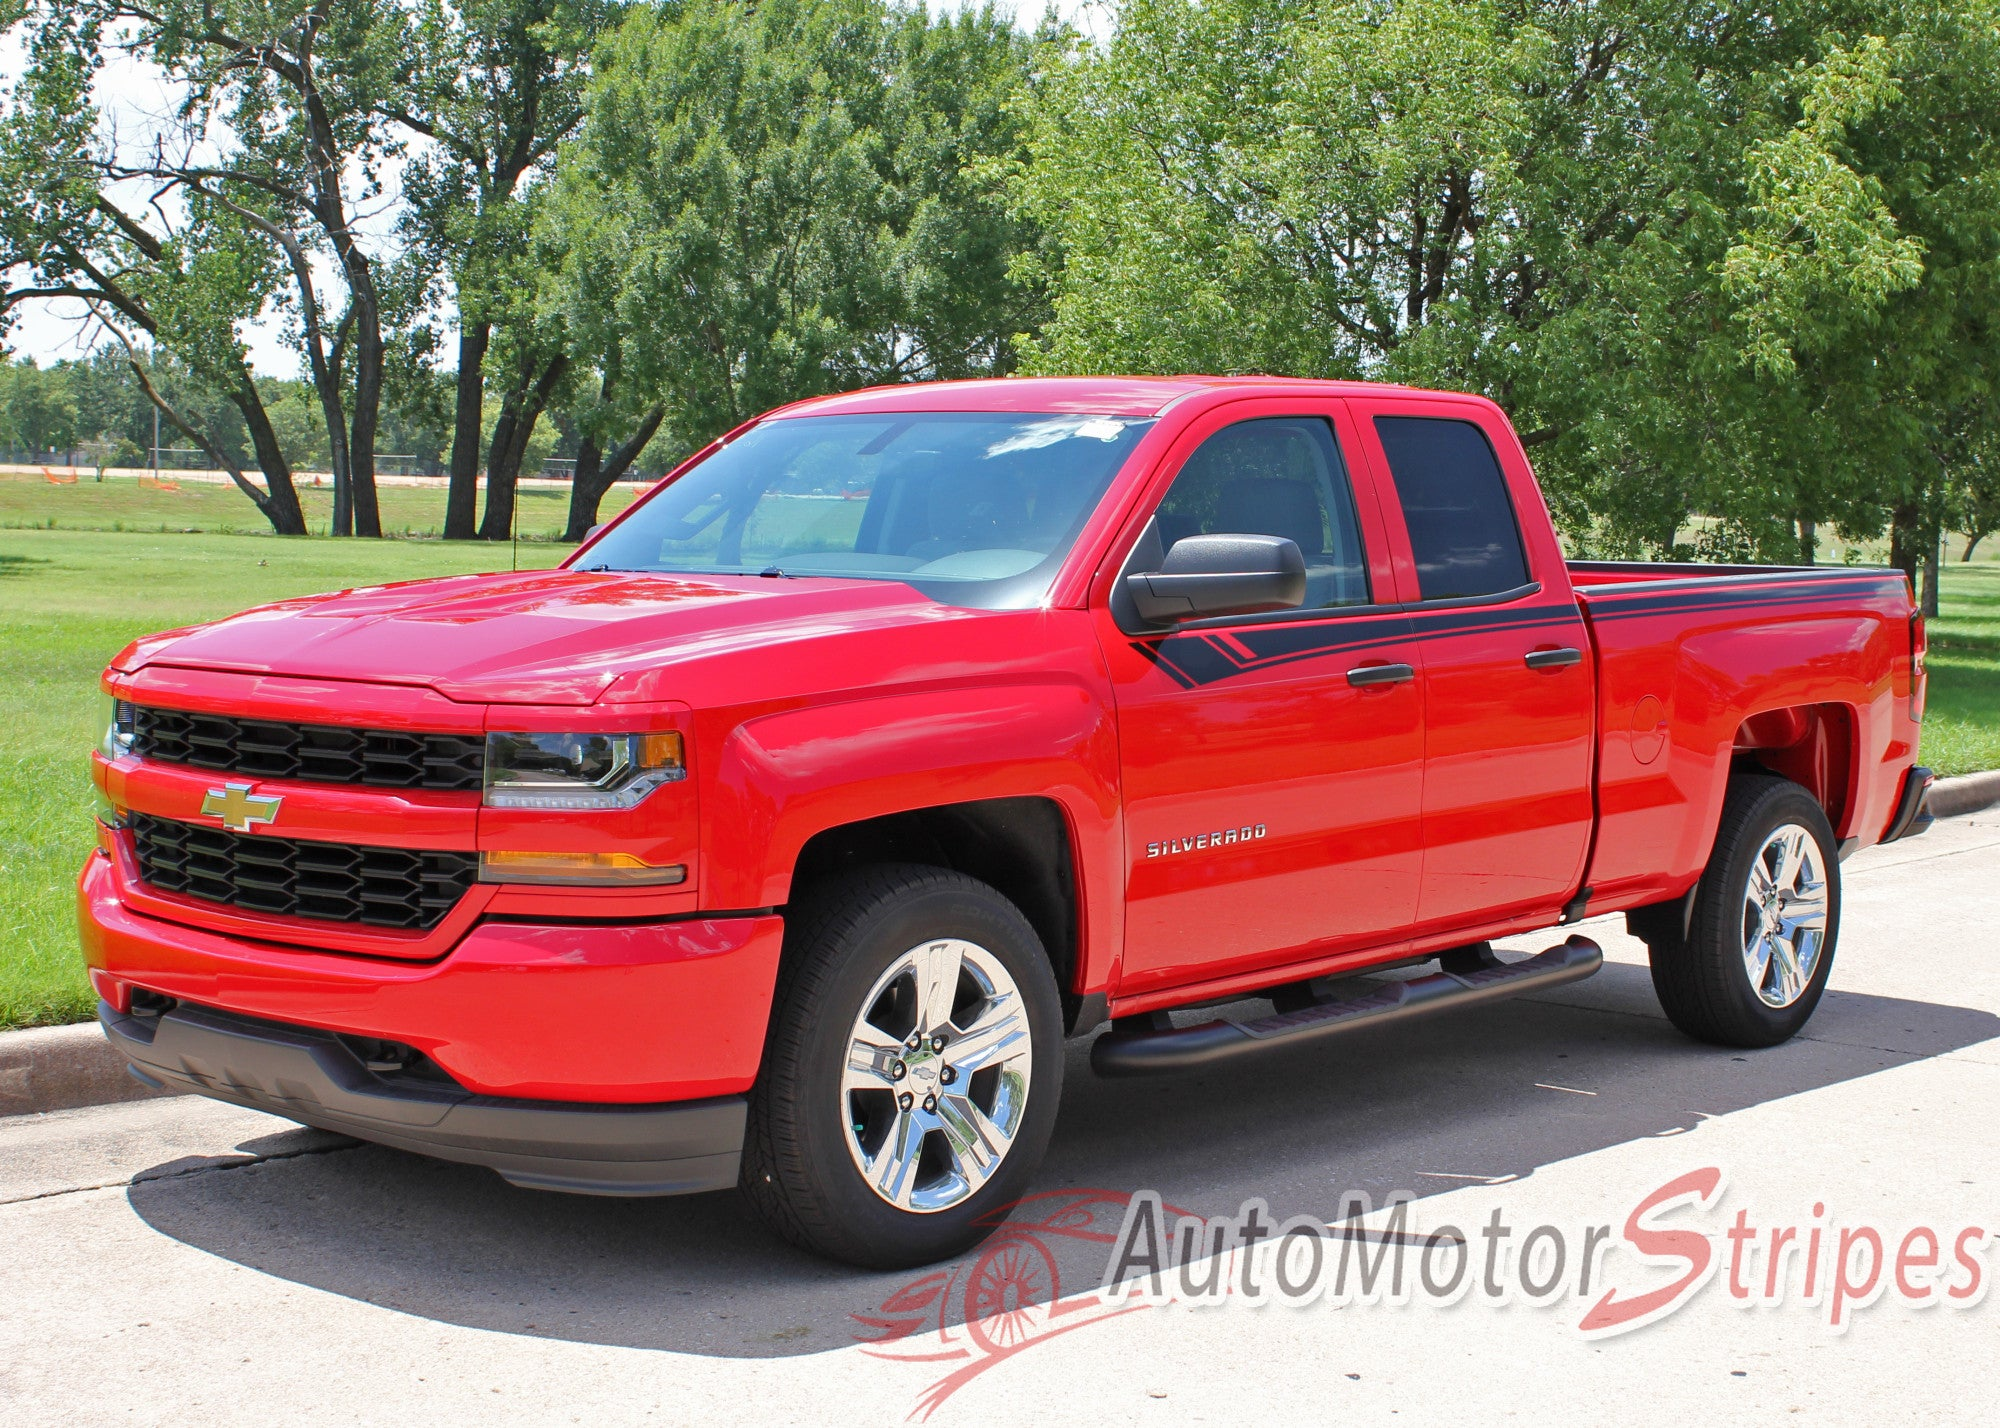 2014 2017 chevy silverado breaker special edition rally truck upper bo auto motor stripes. Black Bedroom Furniture Sets. Home Design Ideas